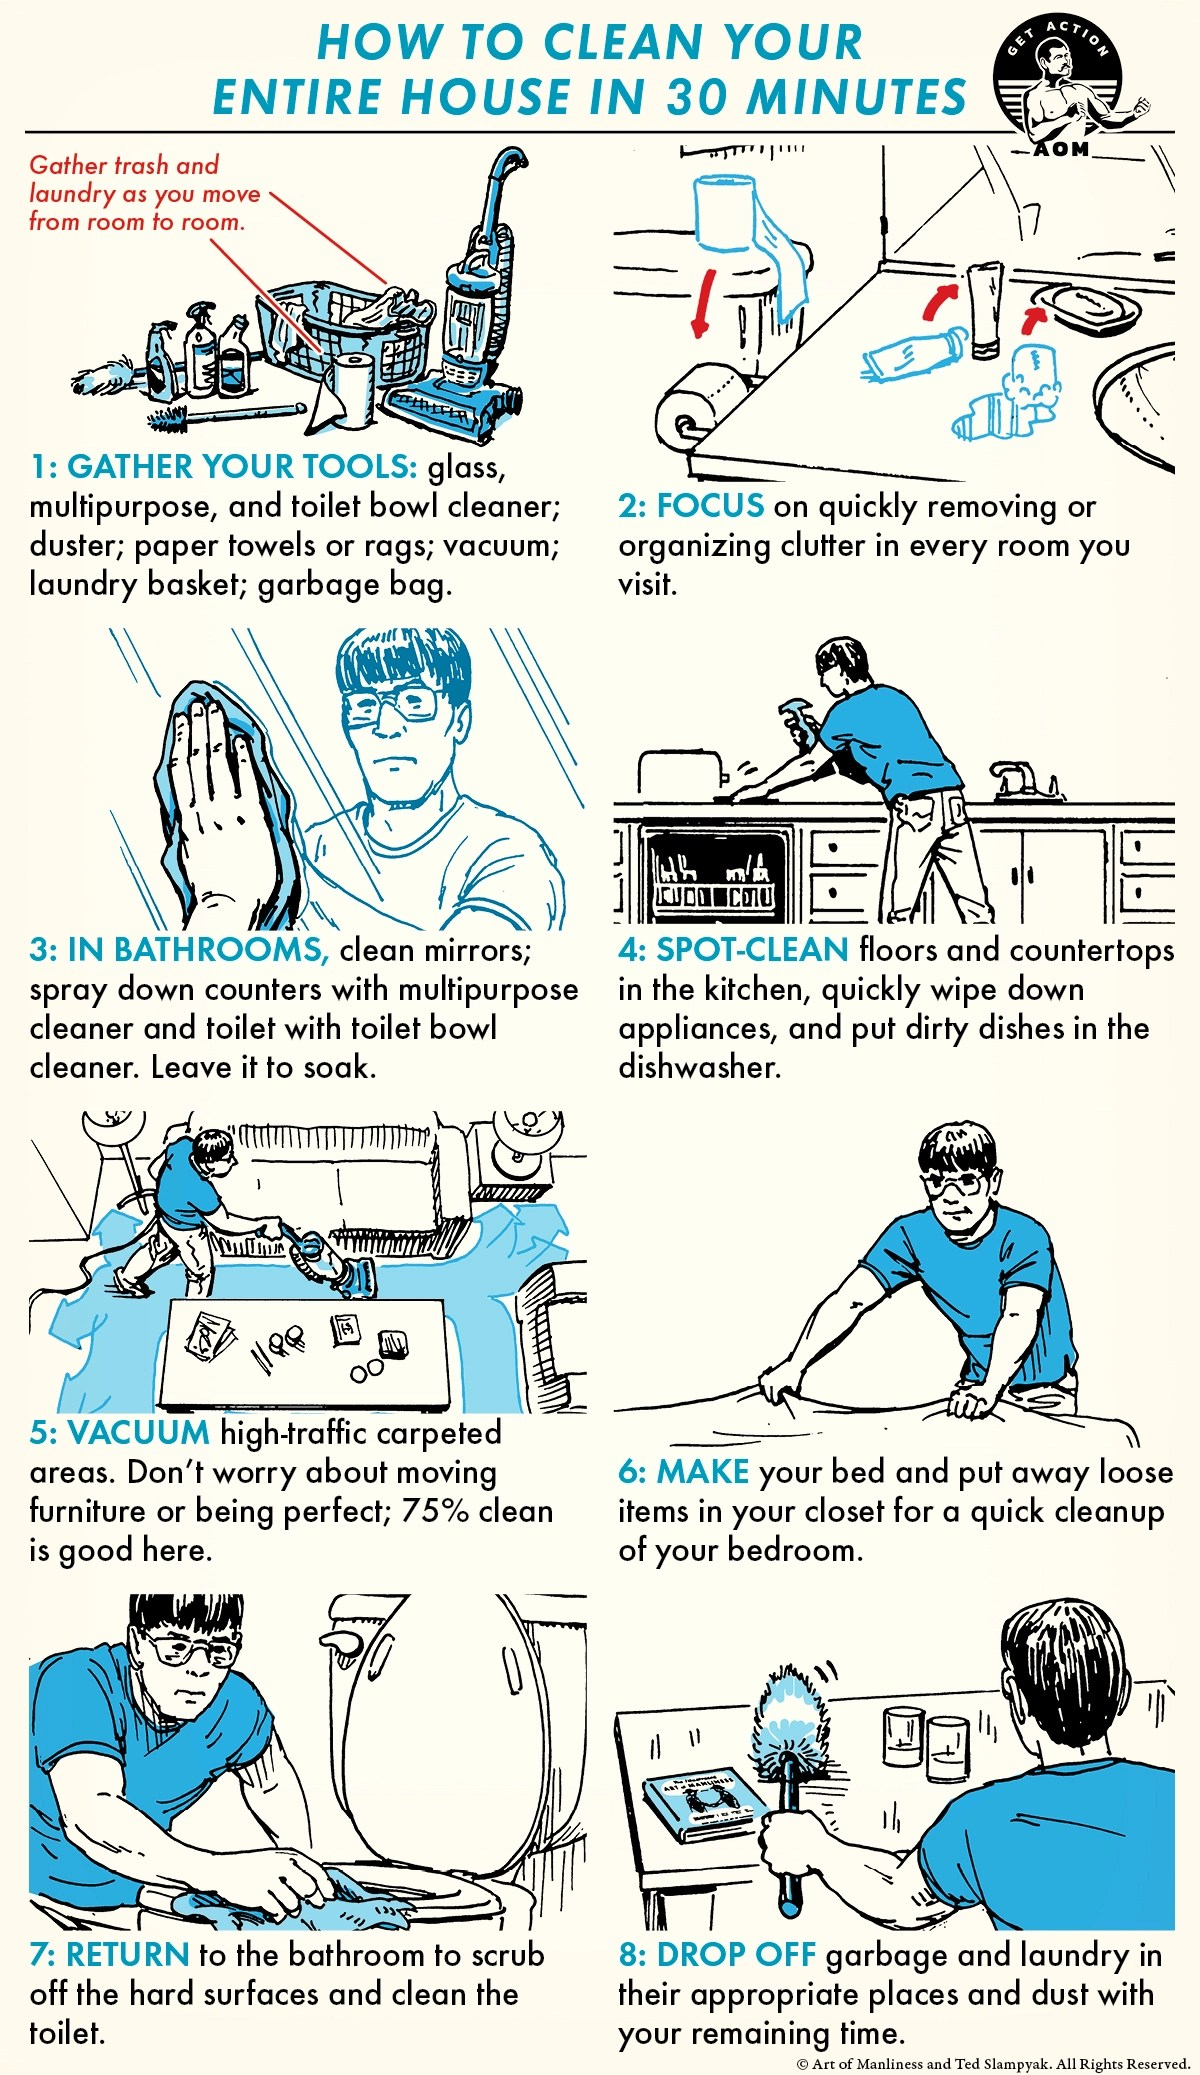 How To Clean Your Entire House In 30 Minutes The Art Of Manliness